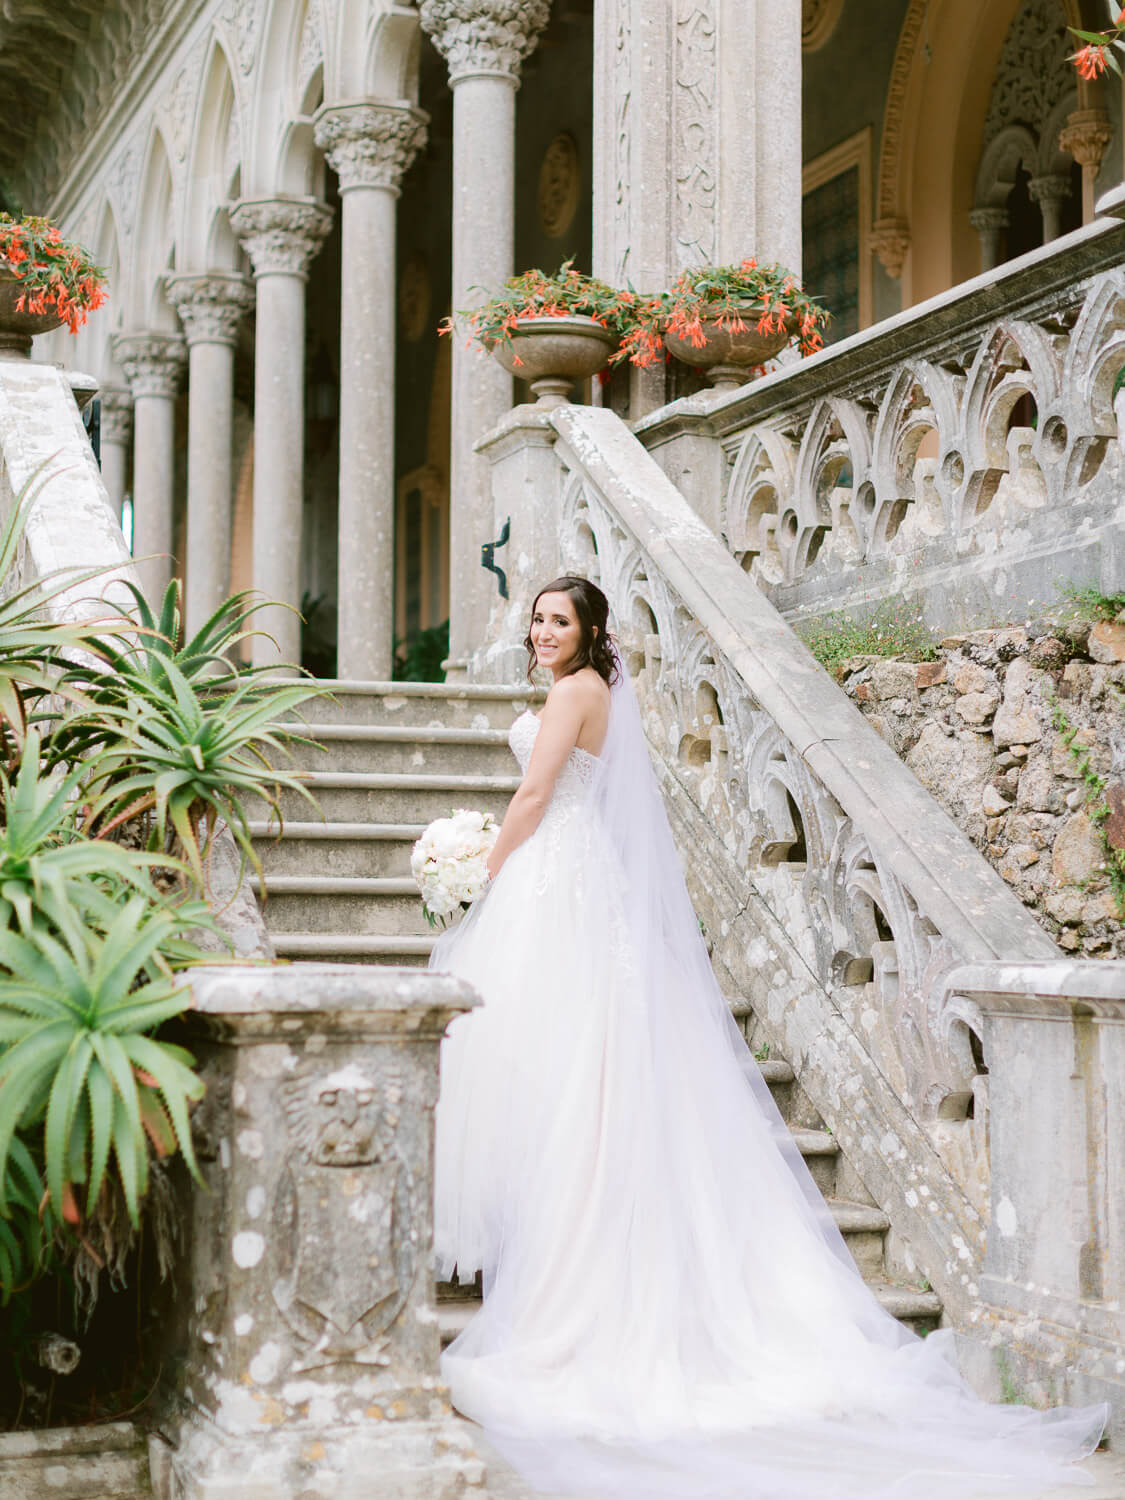 Beautiful Bride with long train at Monserrate Palace by Portugal Wedding Photographer